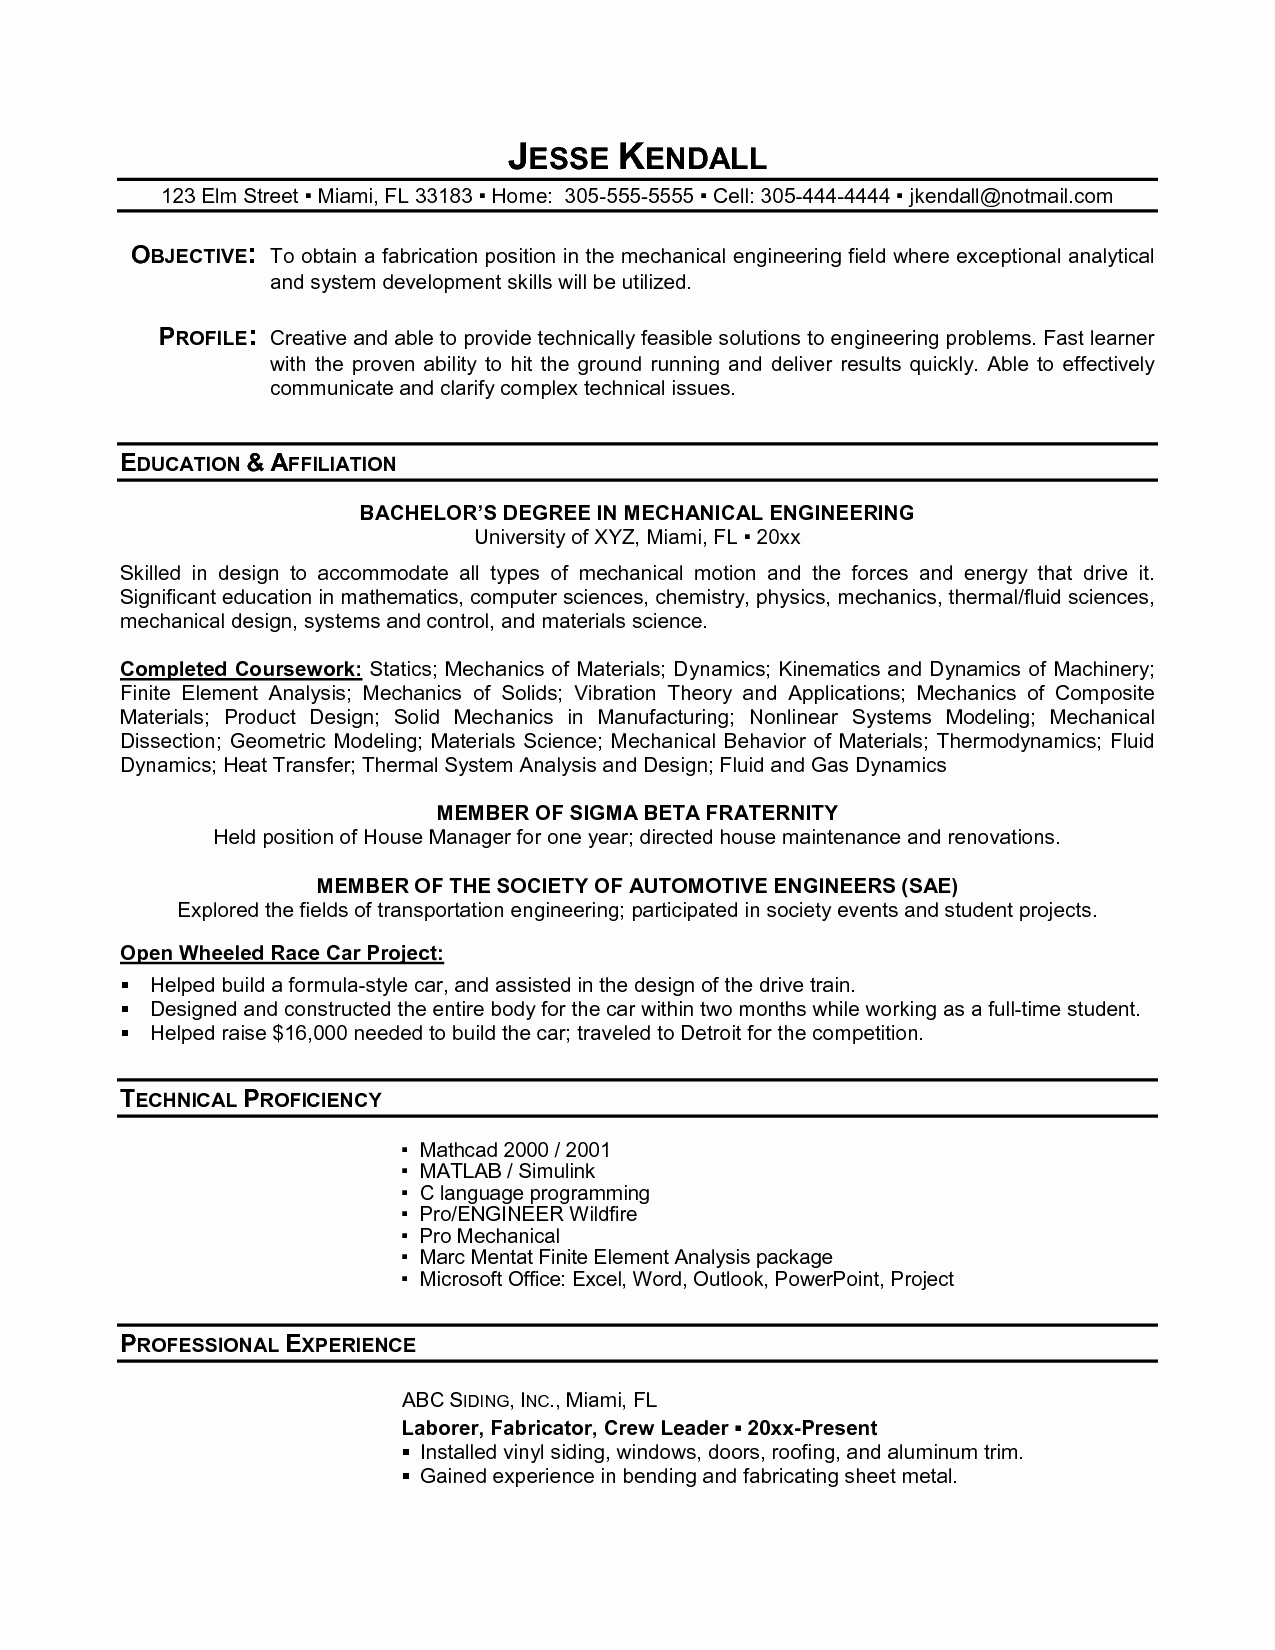 Resume Templates for College Students Beautiful Resume Examples Student Examples Collge High School